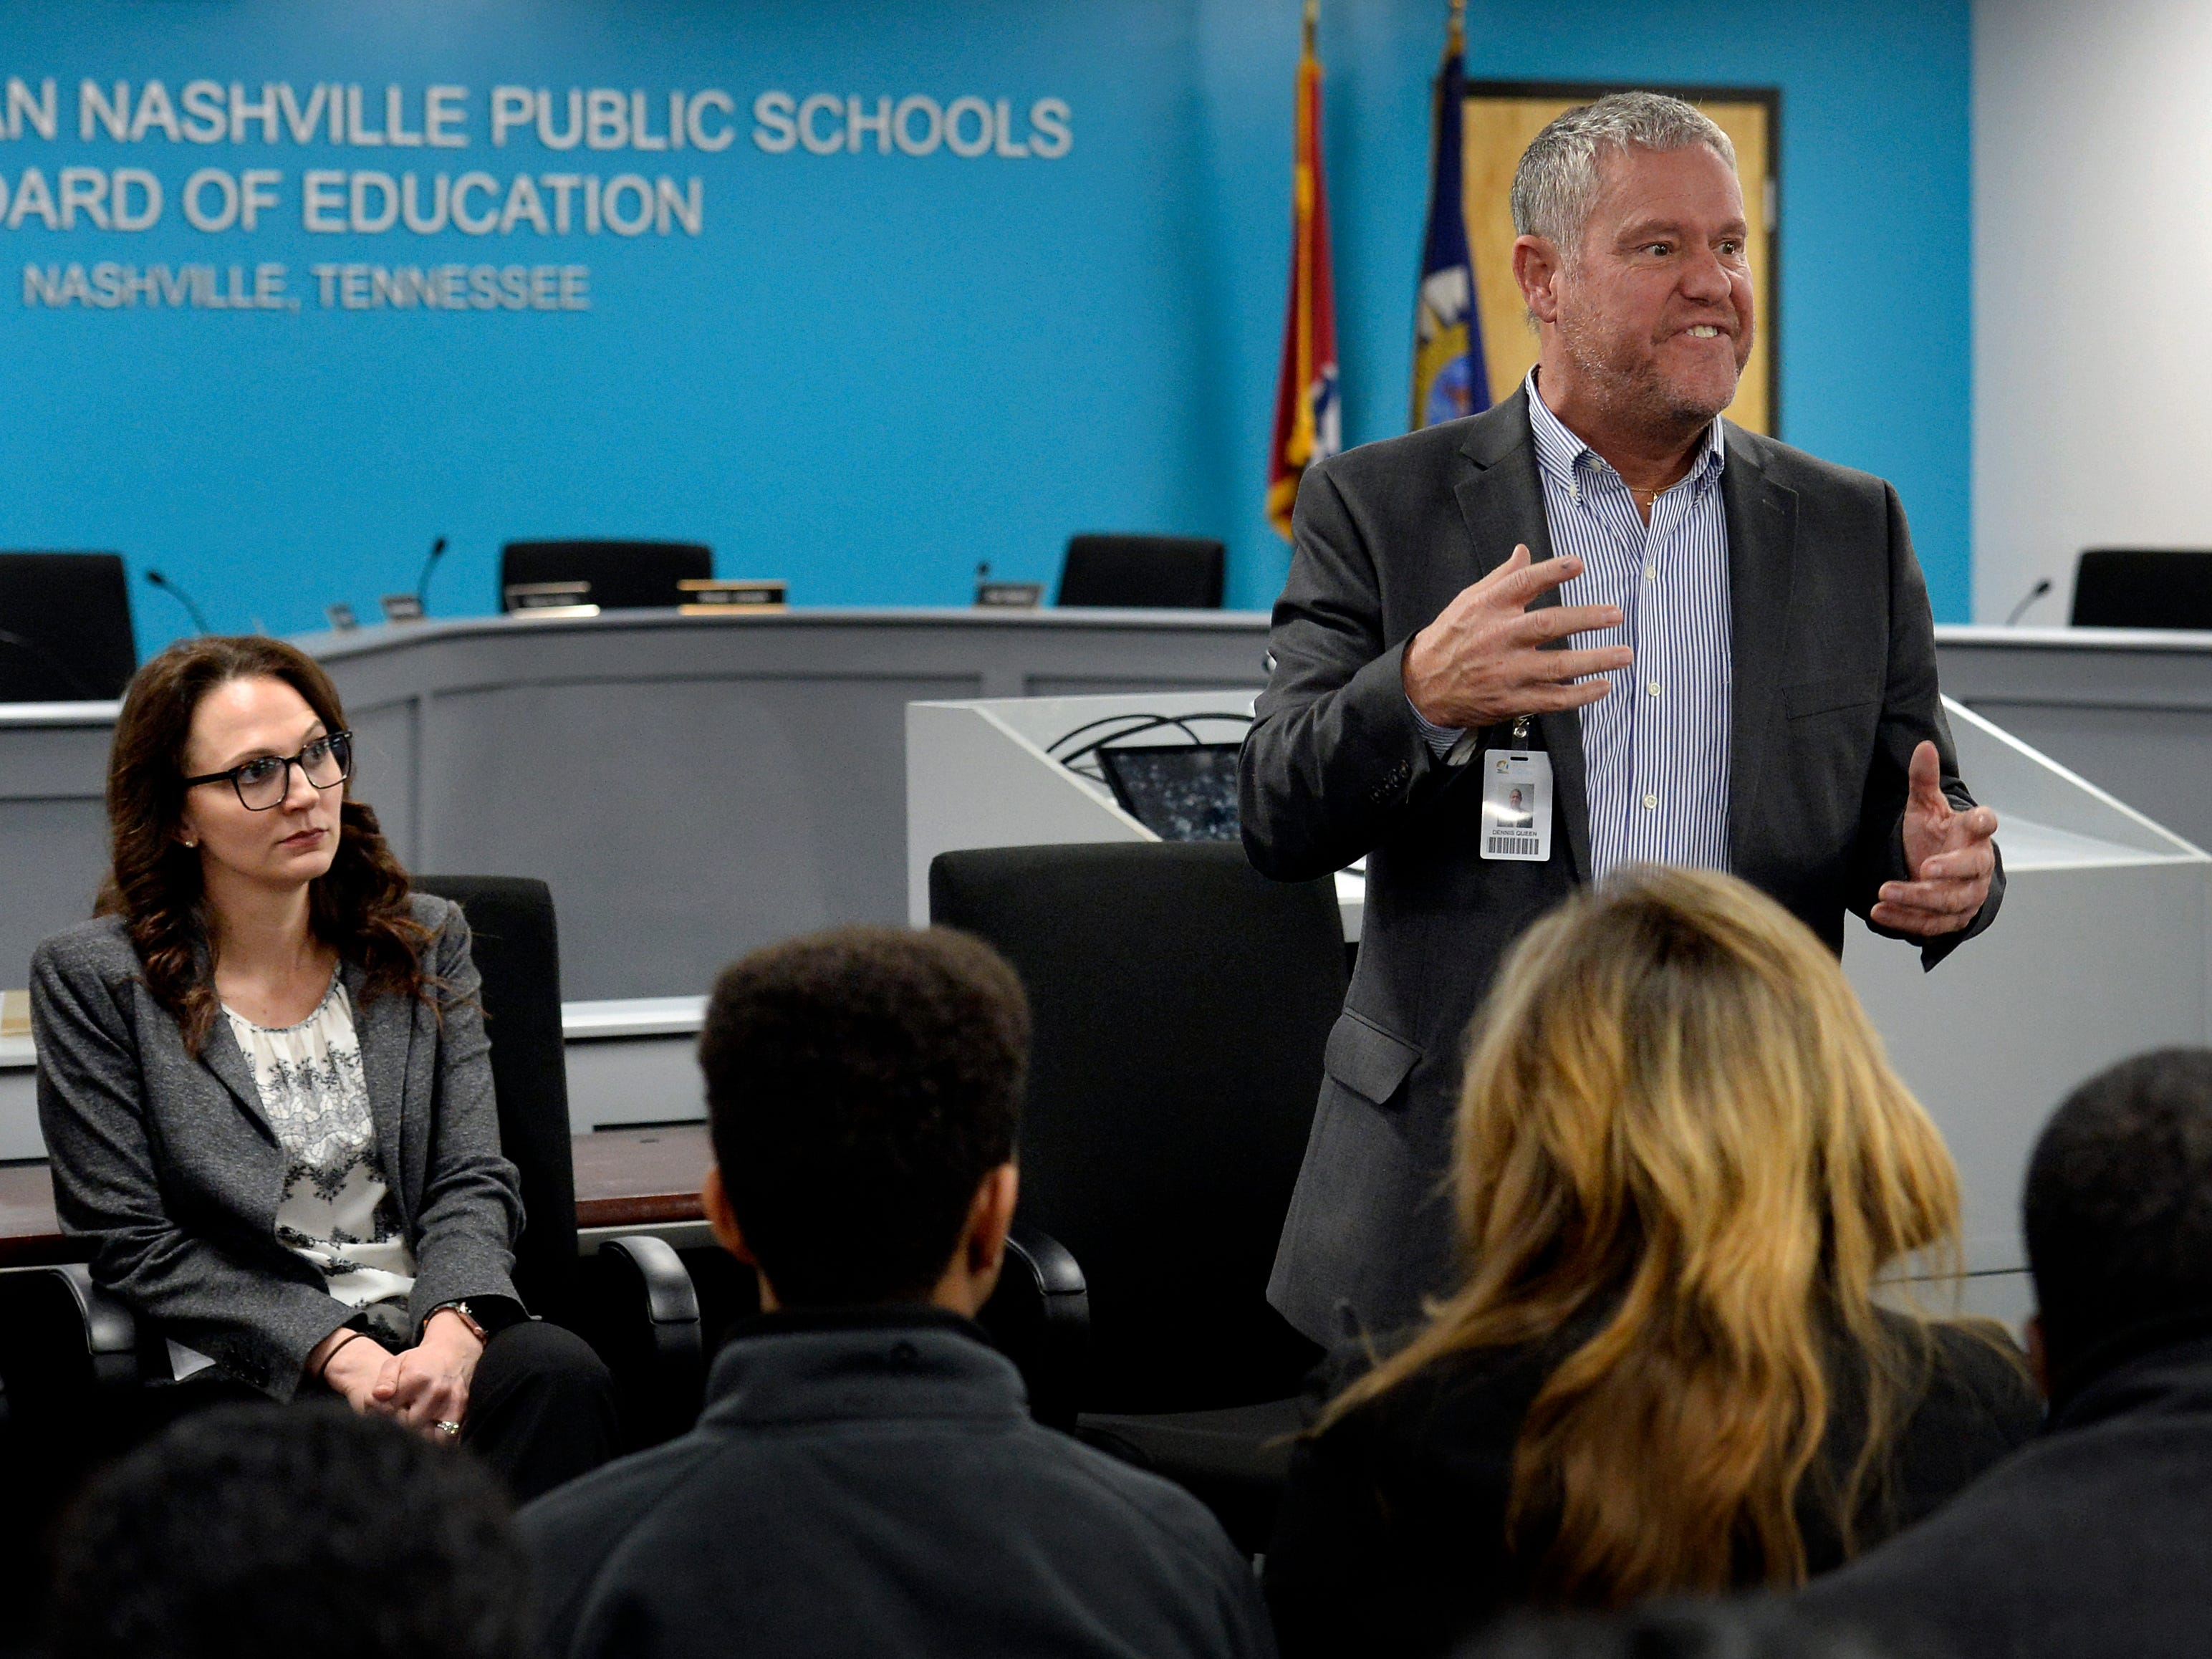 MNPS Executive Director of Charter Schools Dennis Queen expresses his frustration and sympathy for New Vision Academy charter school parents and students during a meeting on Thursday, March 7, 2019 in Nashville, Tenn.